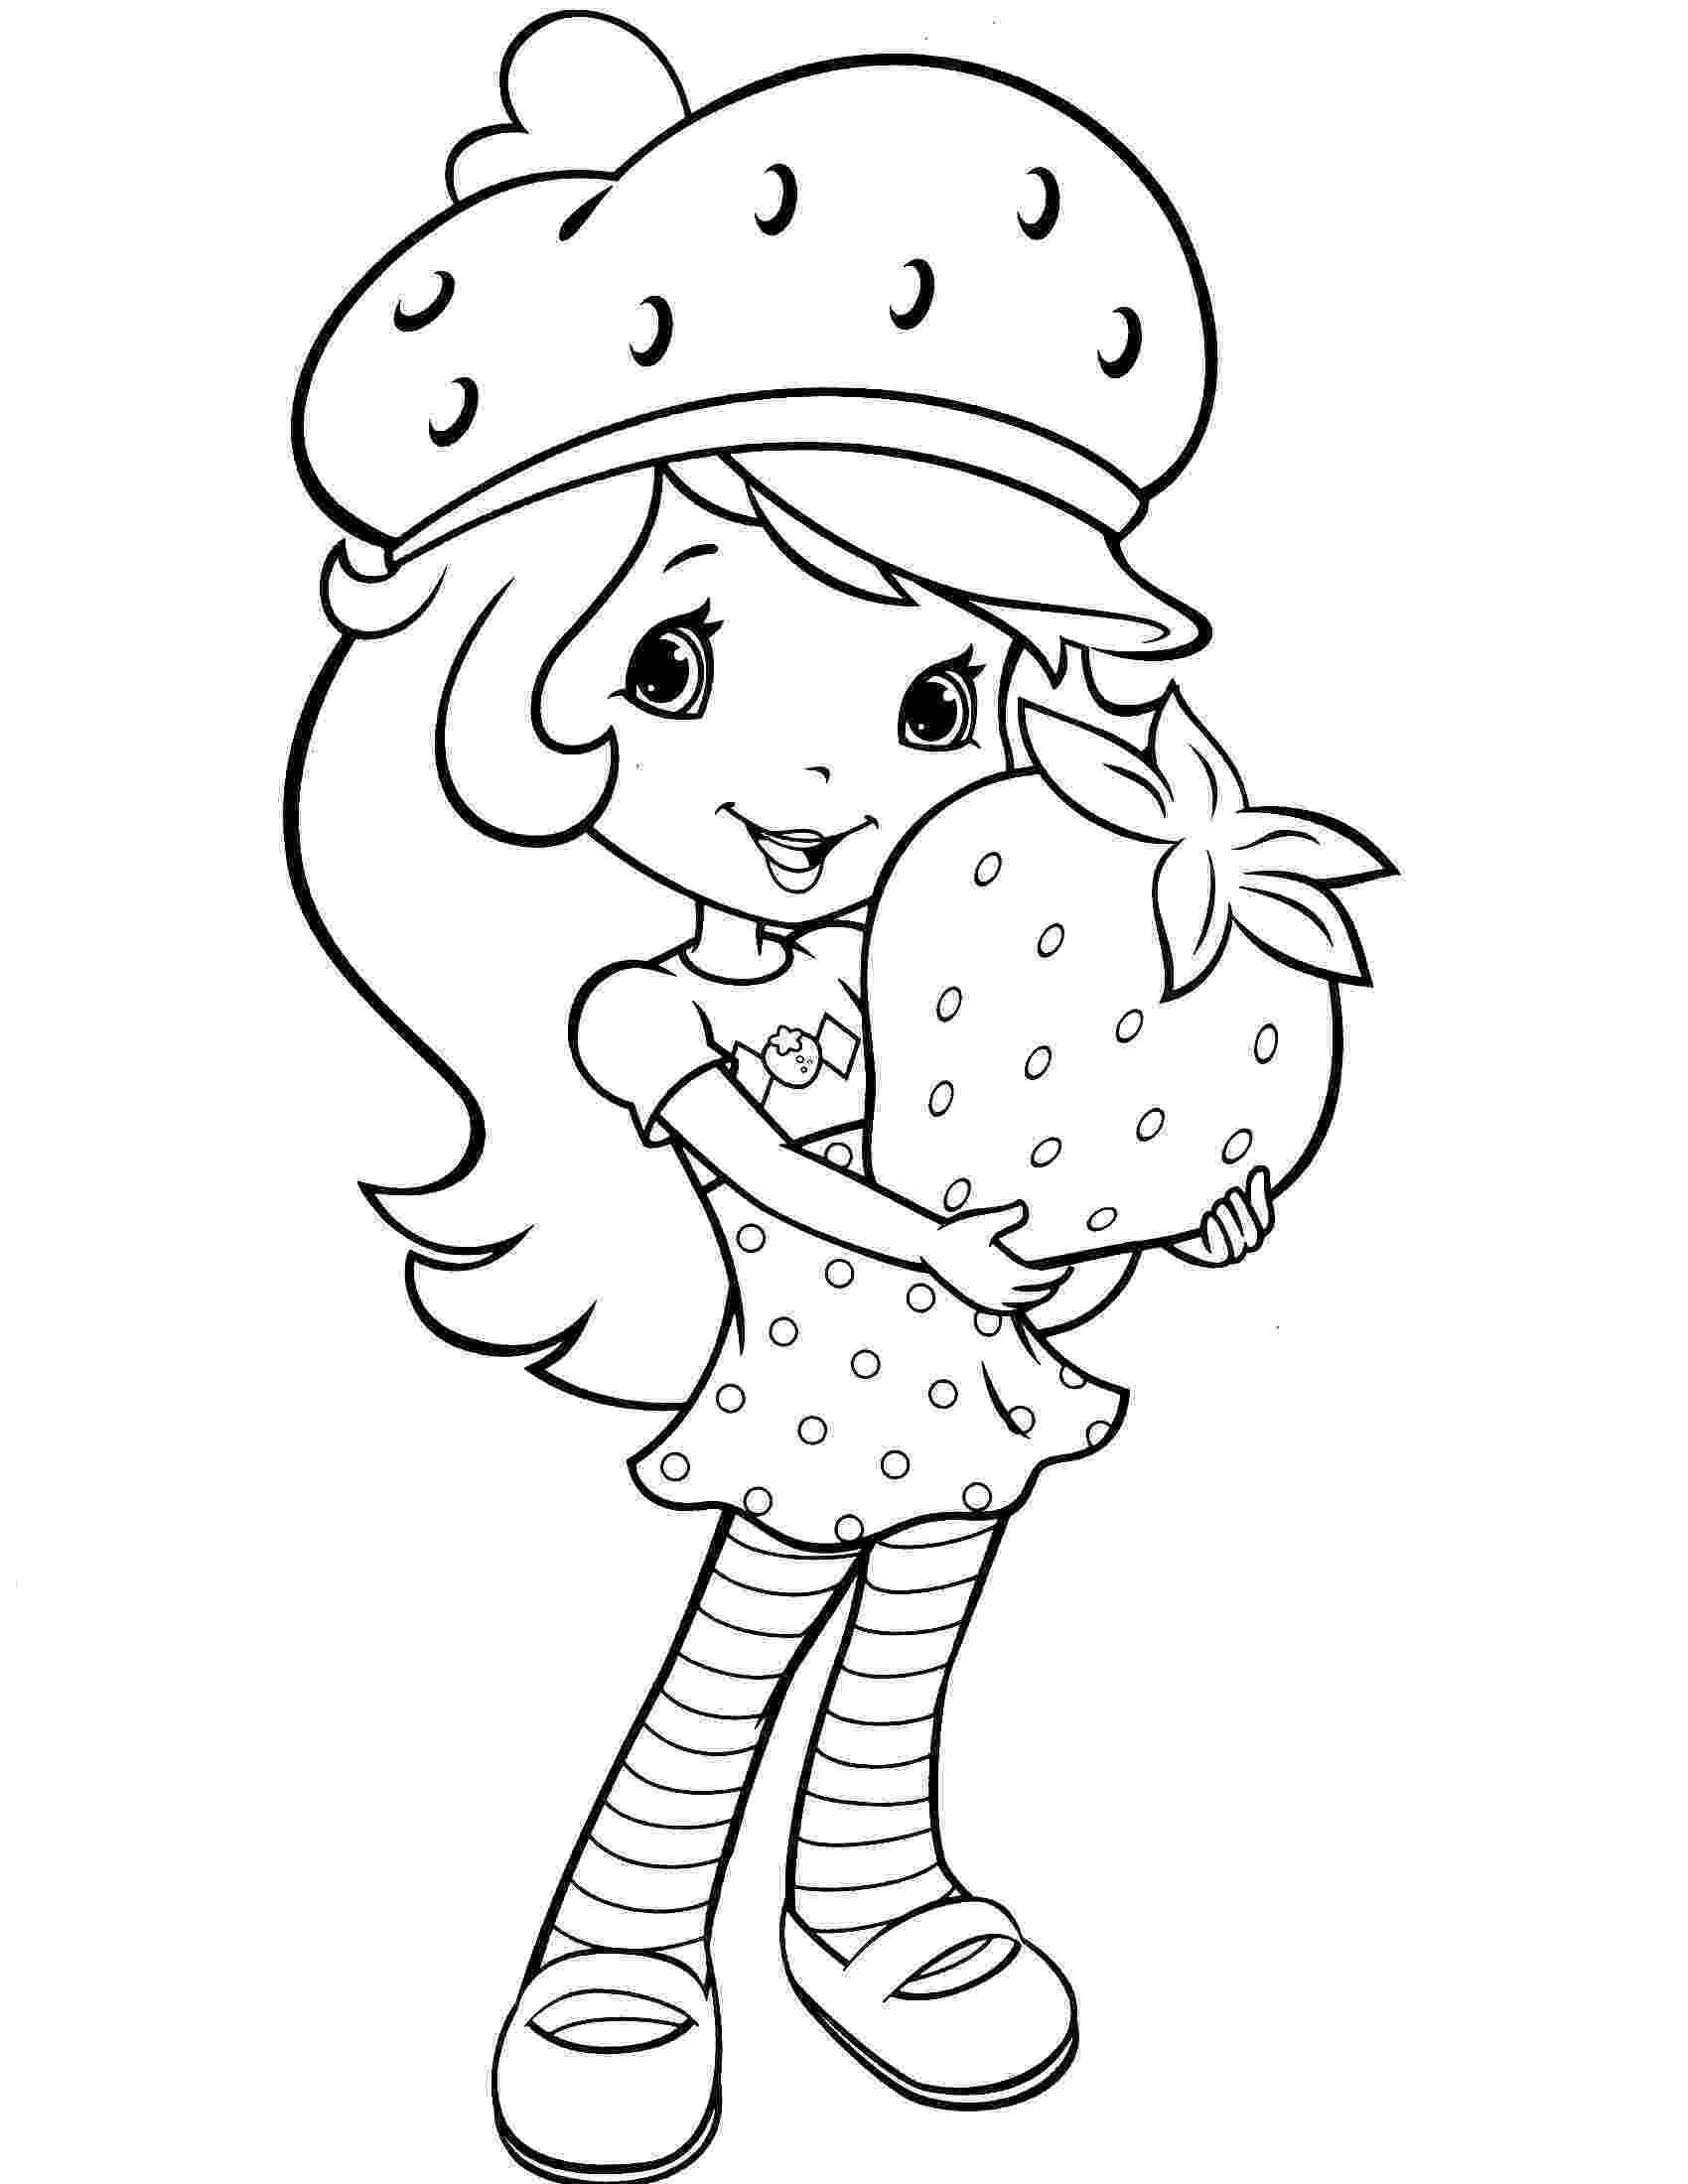 coloring pages strawberry shortcake strawberry shortcake coloring pages team colors pages shortcake strawberry coloring